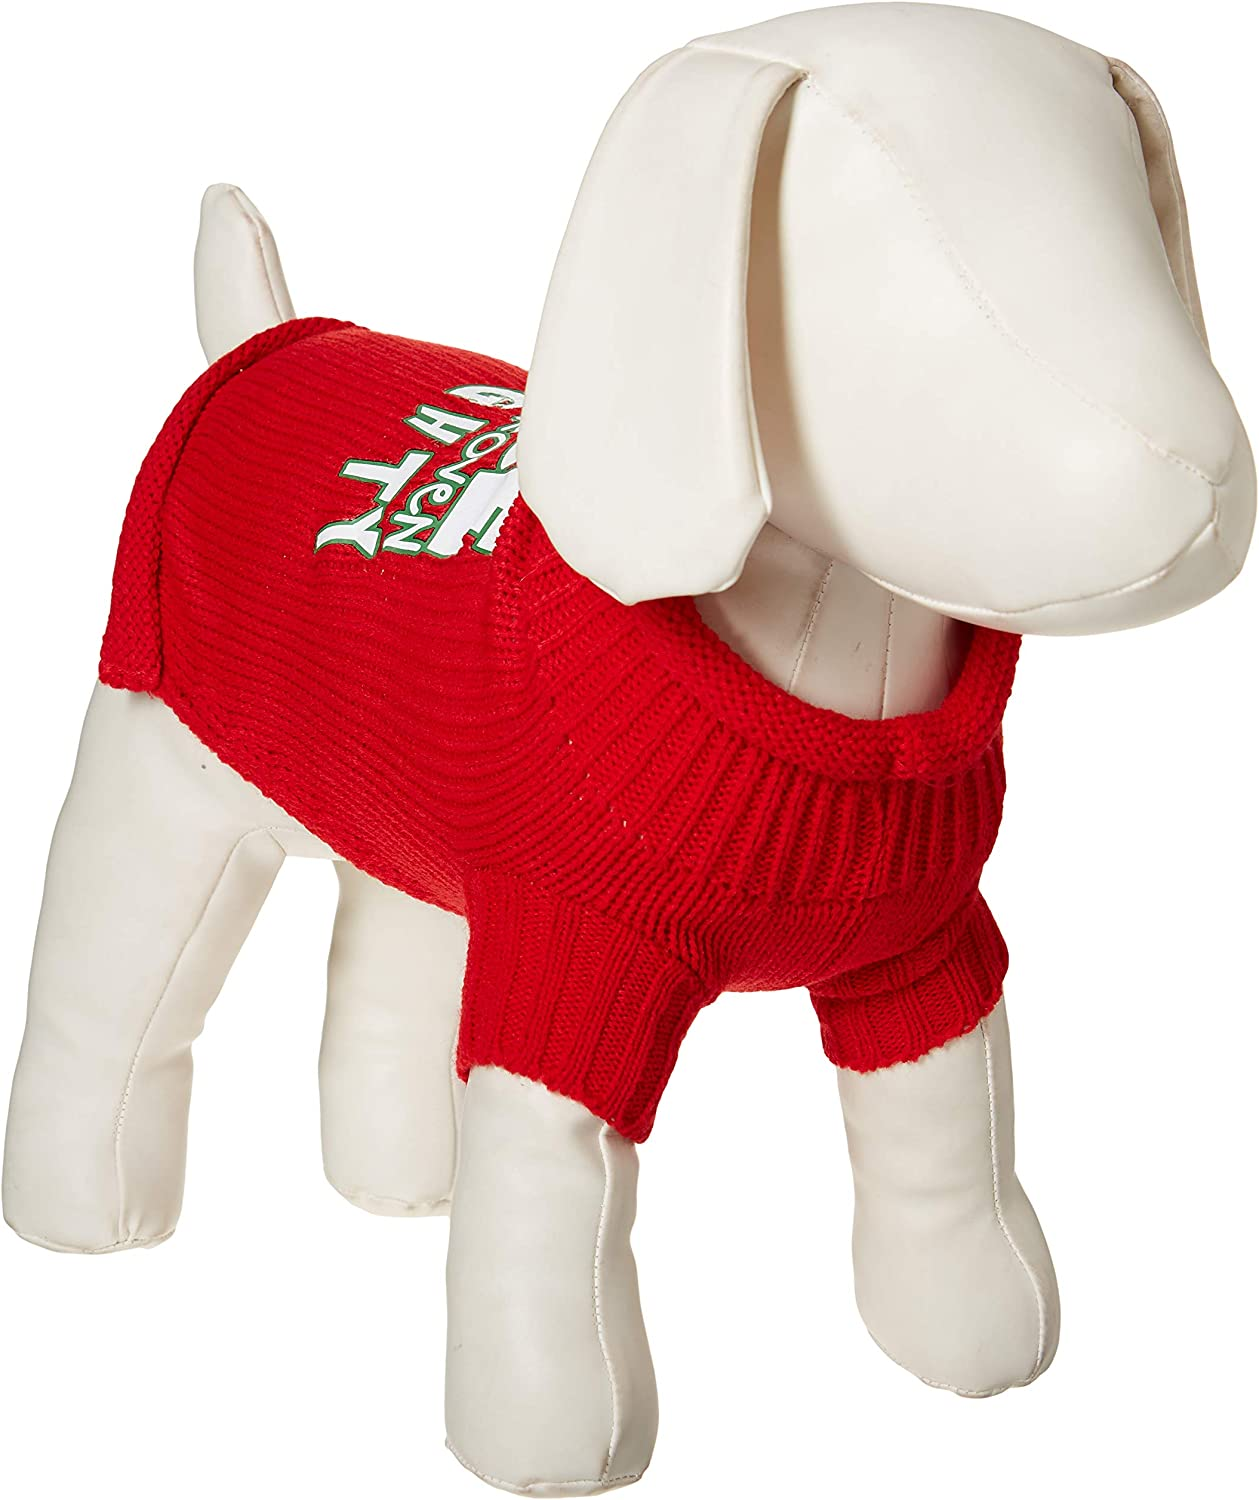 Nice Until Proven Naughty Cotton Knit Festive Holiday Pet Sweater